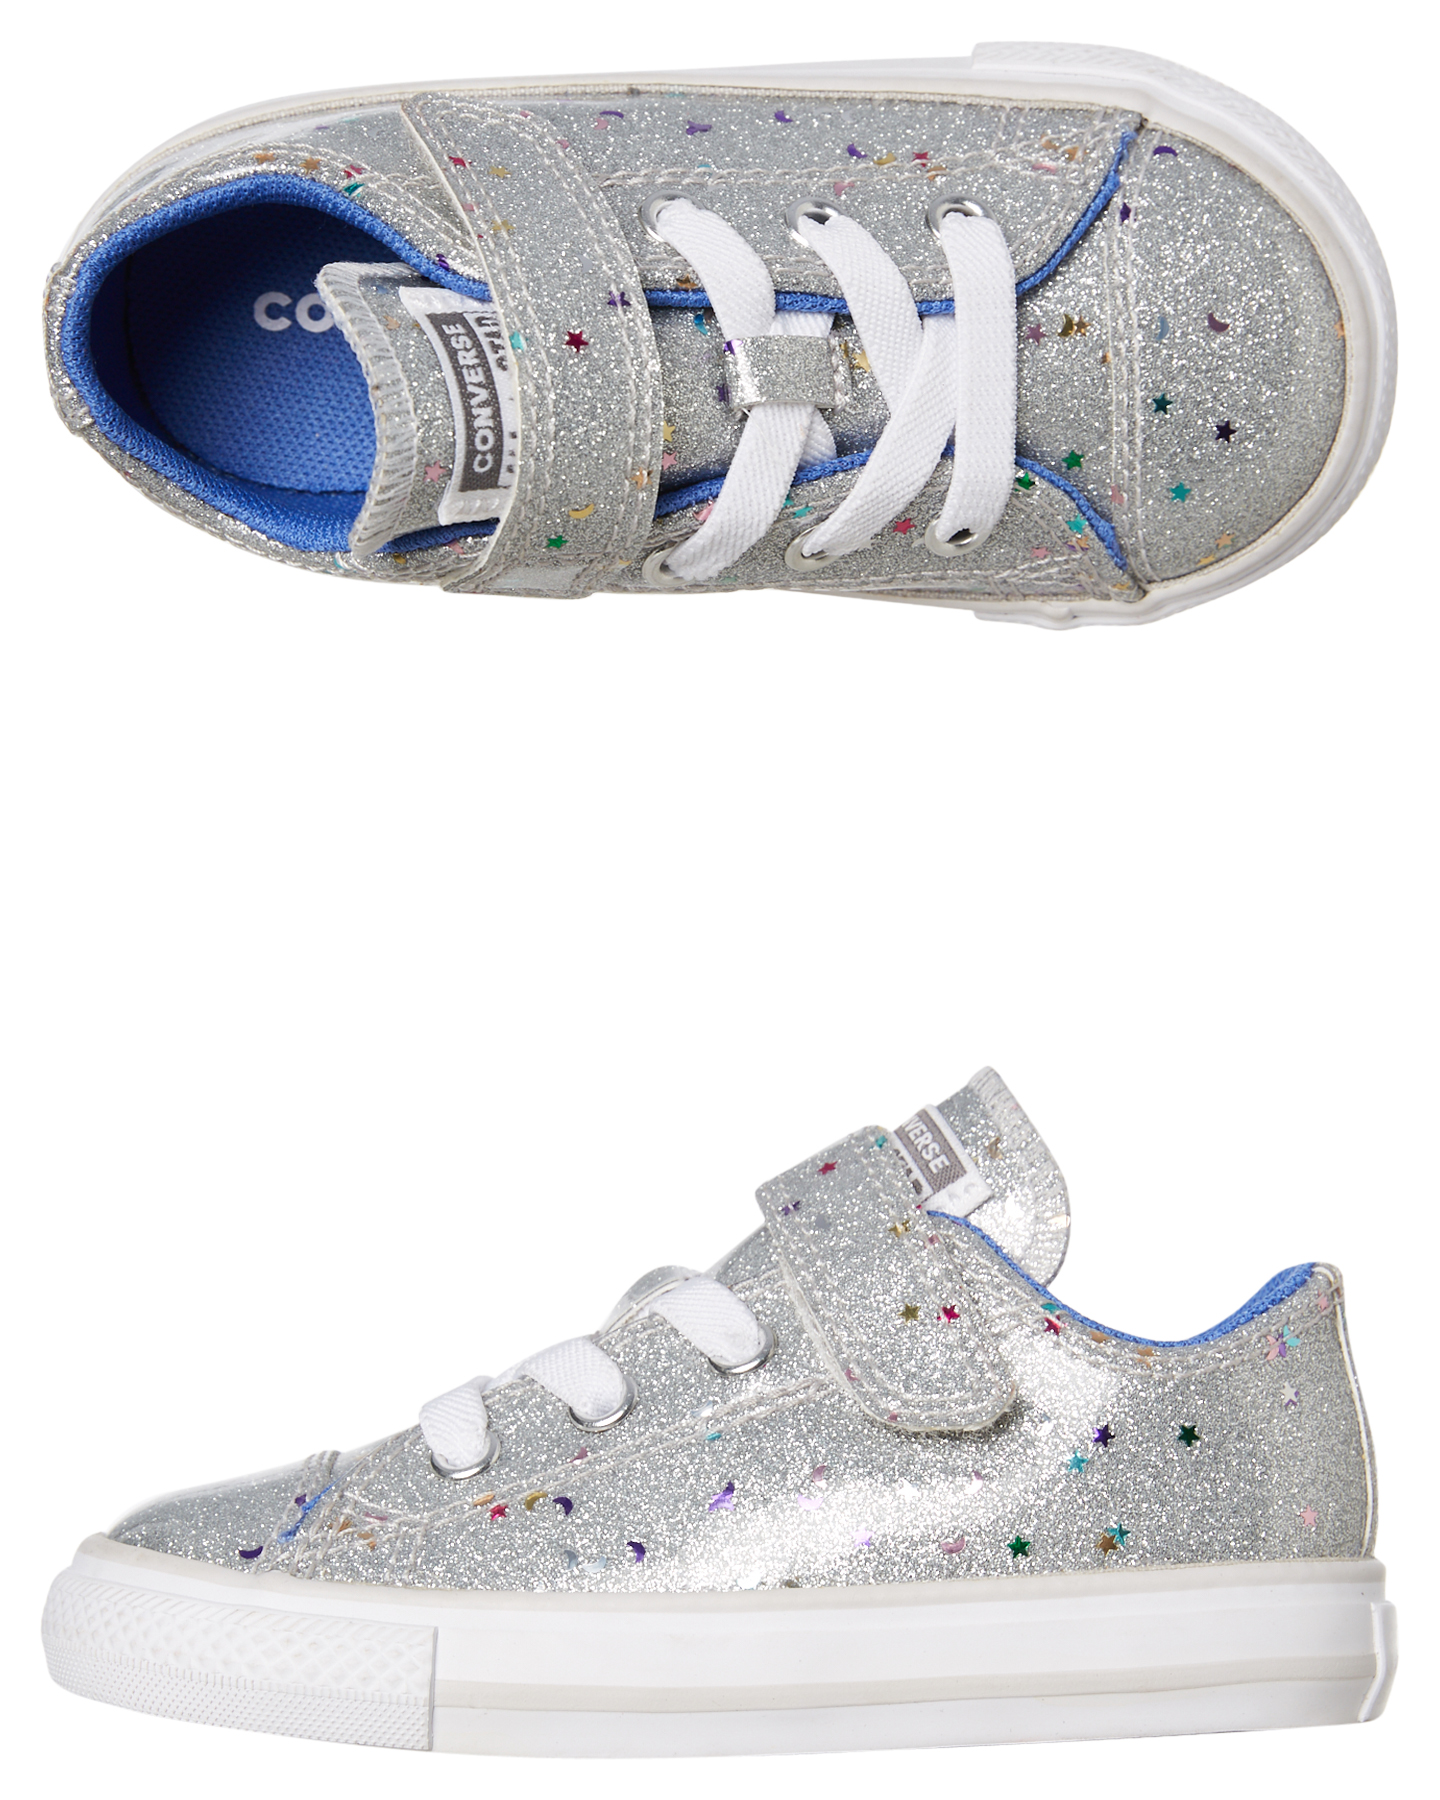 Chuck Taylor All Star Galaxy Glimmer Shoe Toddler